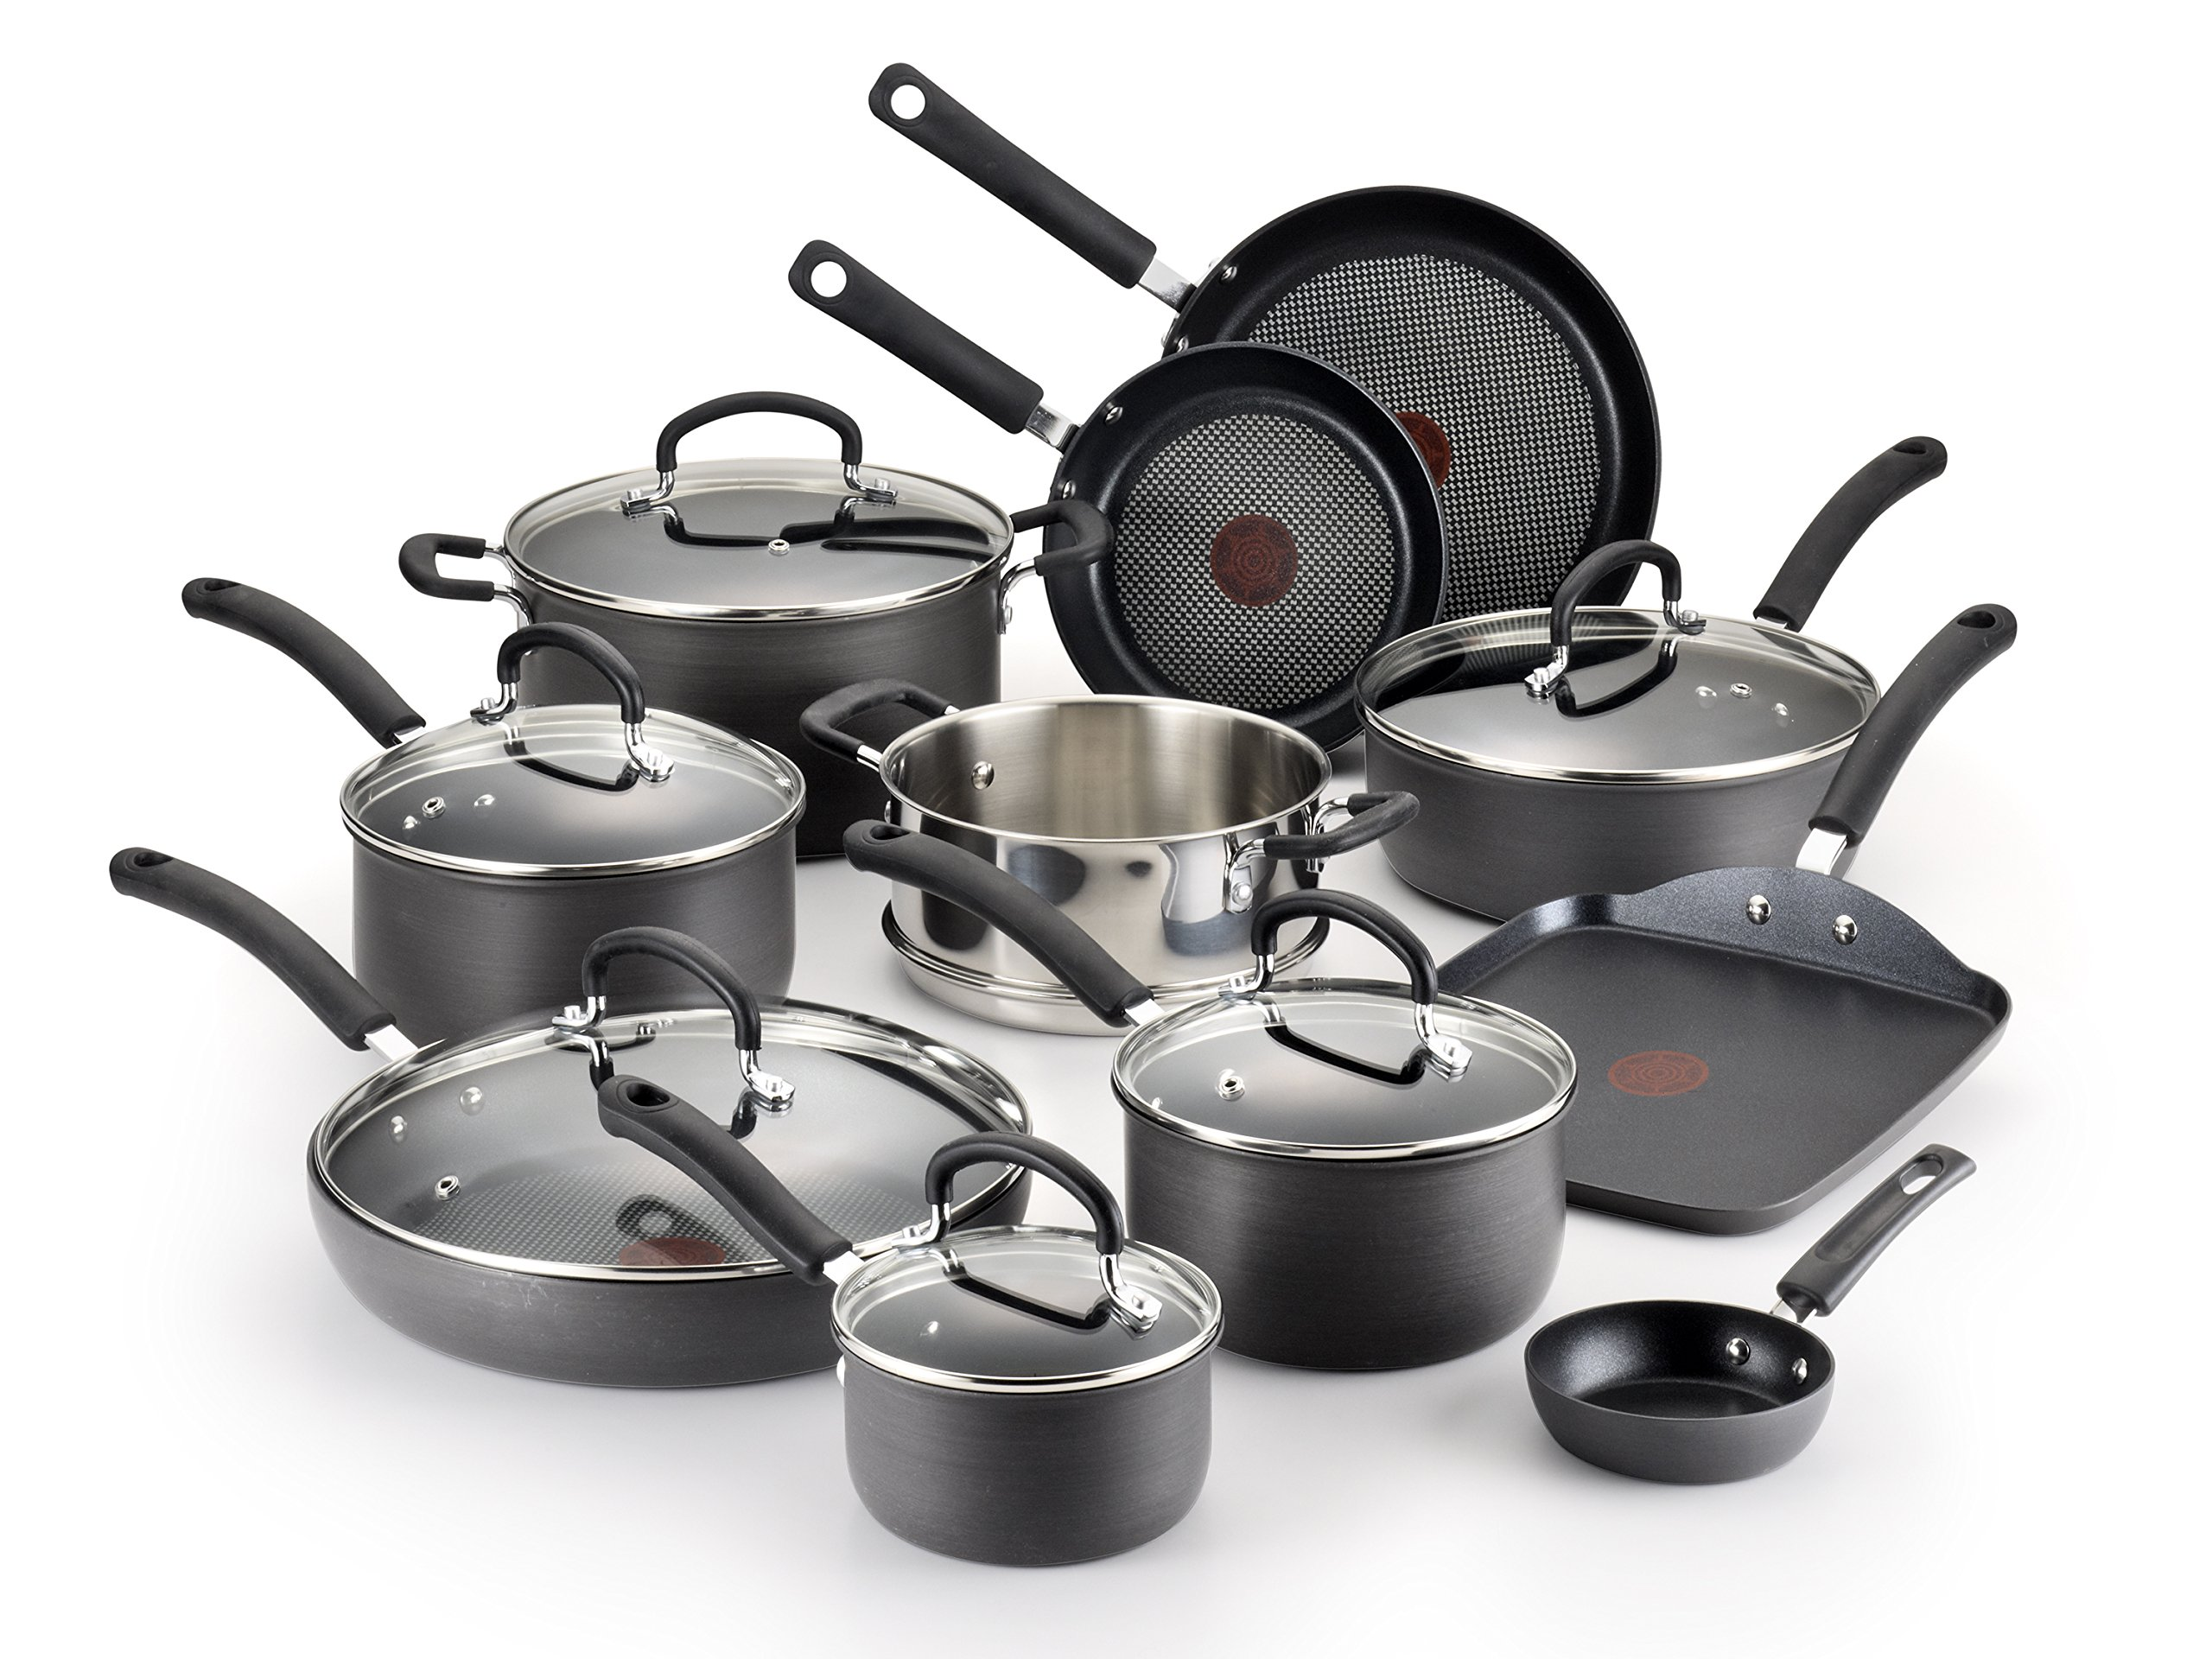 T-fal E765SH Ultimate Hard Anodized Scratch Resistant Titanium Nonstick Thermo-Spot Heat Indicator Anti-Warp Base Dishwasher Safe Oven Safe PFOA Free Cookware Set, 17-Piece, Gray by T-fal